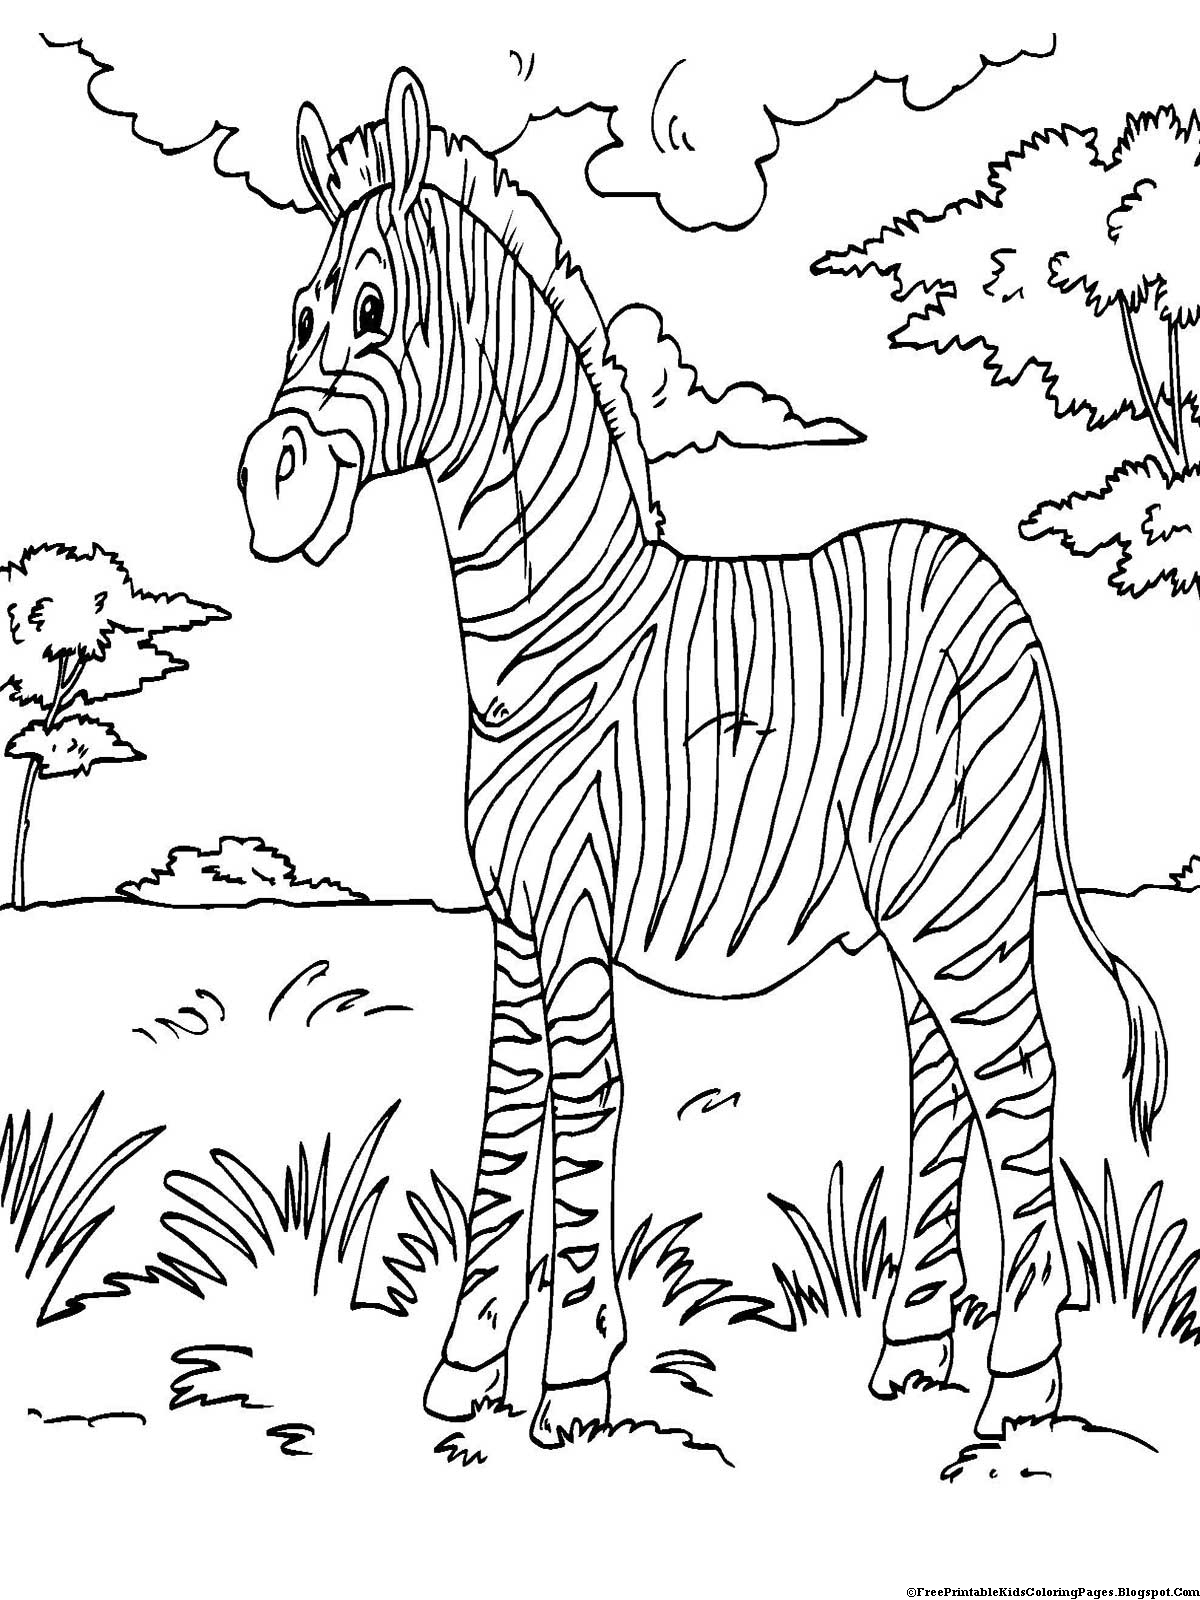 color pages printable zebra coloring pages free printable kids coloring pages color printable pages